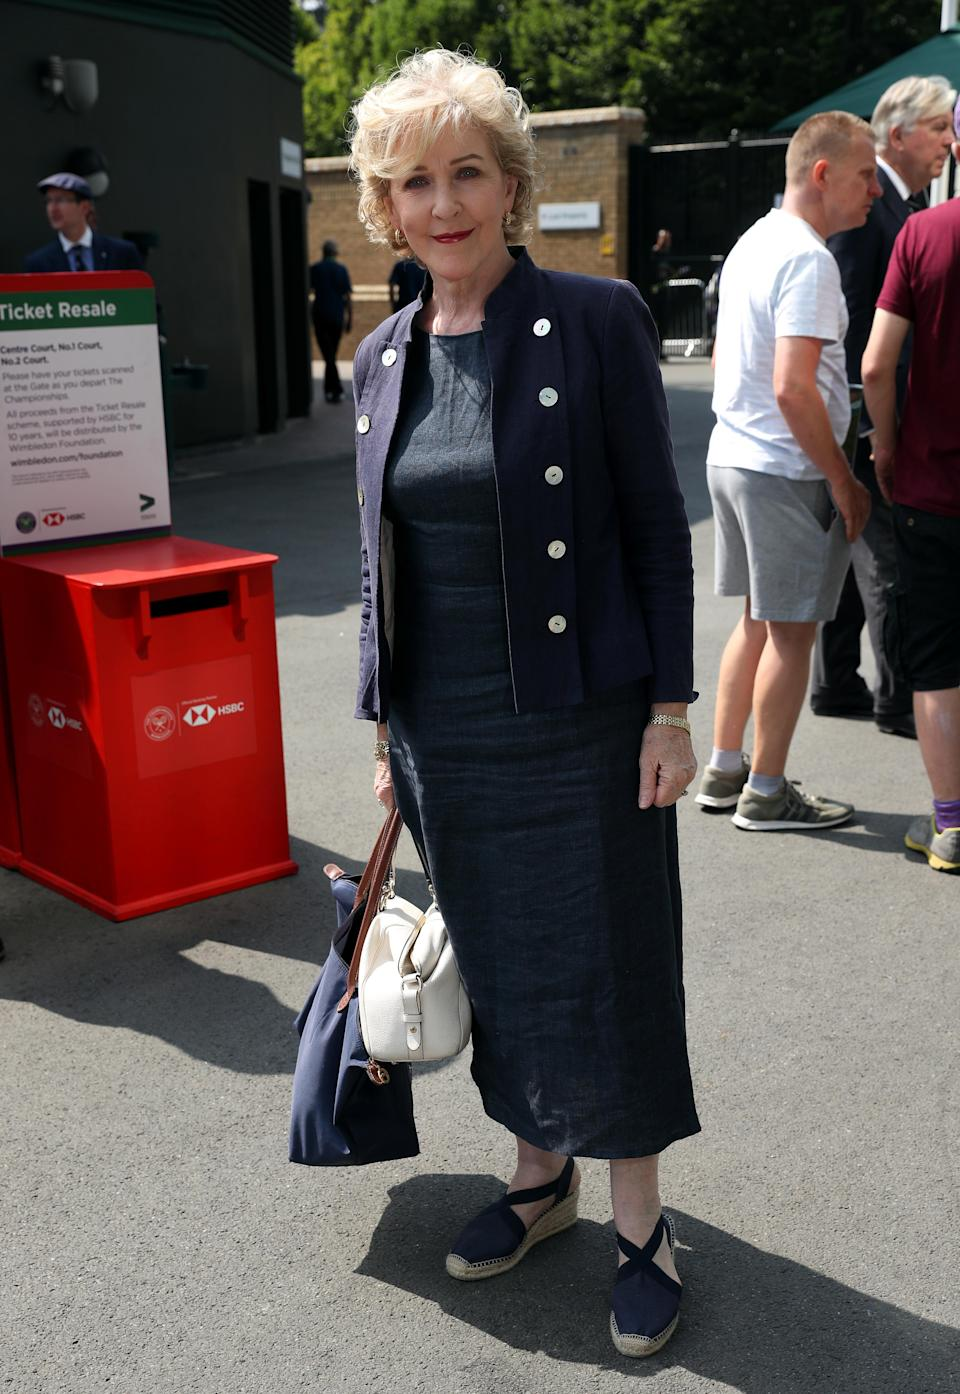 <p>Patricia Hodge made her debut at the 2018 tennis tournament in a navy-hued shift dress with a co-ordinating blazer and espadrilles – the Wimbledon shoe of choice this season. <em>[Photo: PA]</em> </p>